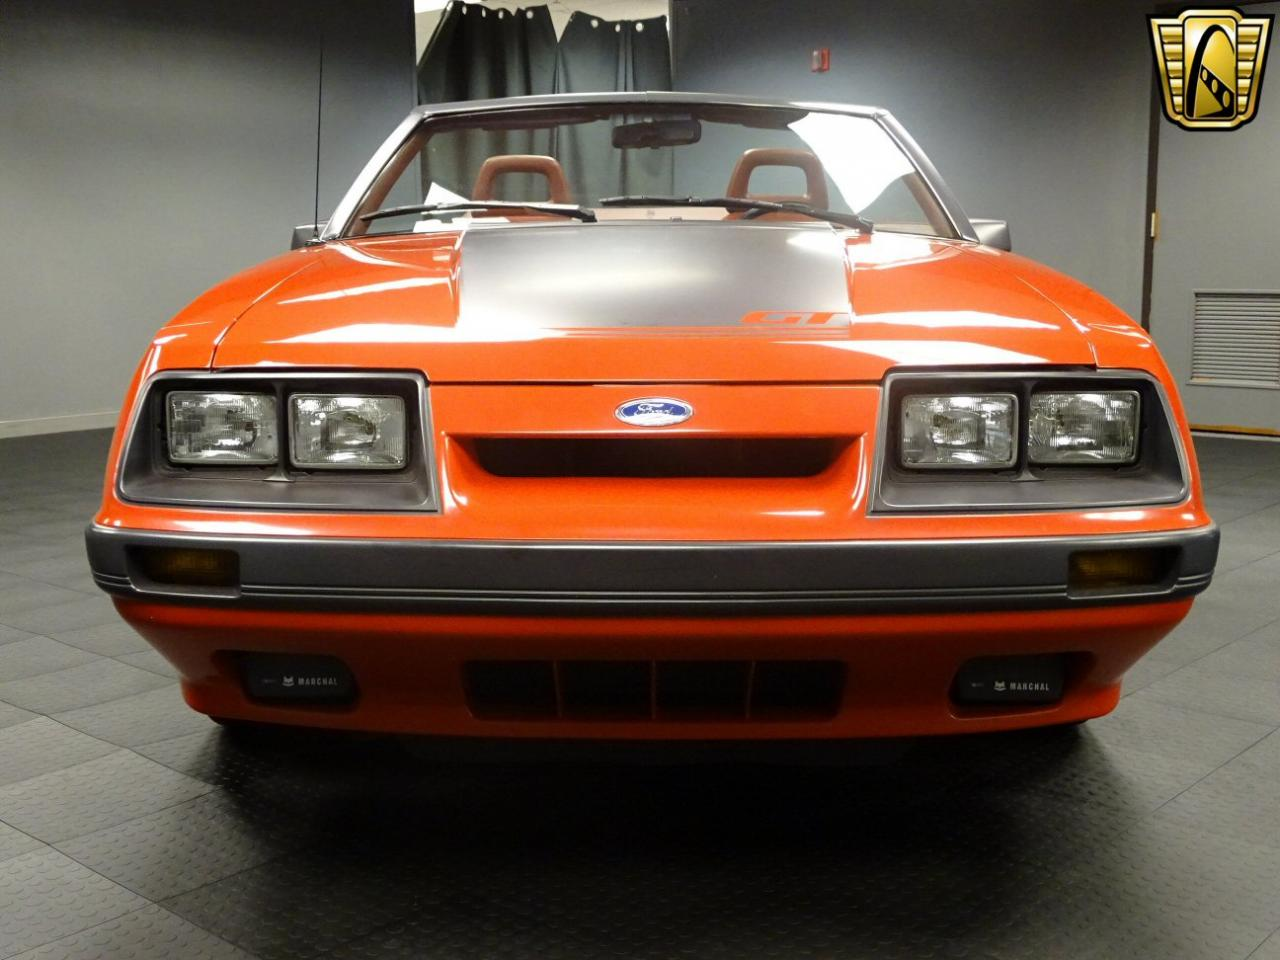 1986 Ford Mustang Gt 3905 Miles Bright Red Convertible 50l V8 Fi Prevnext